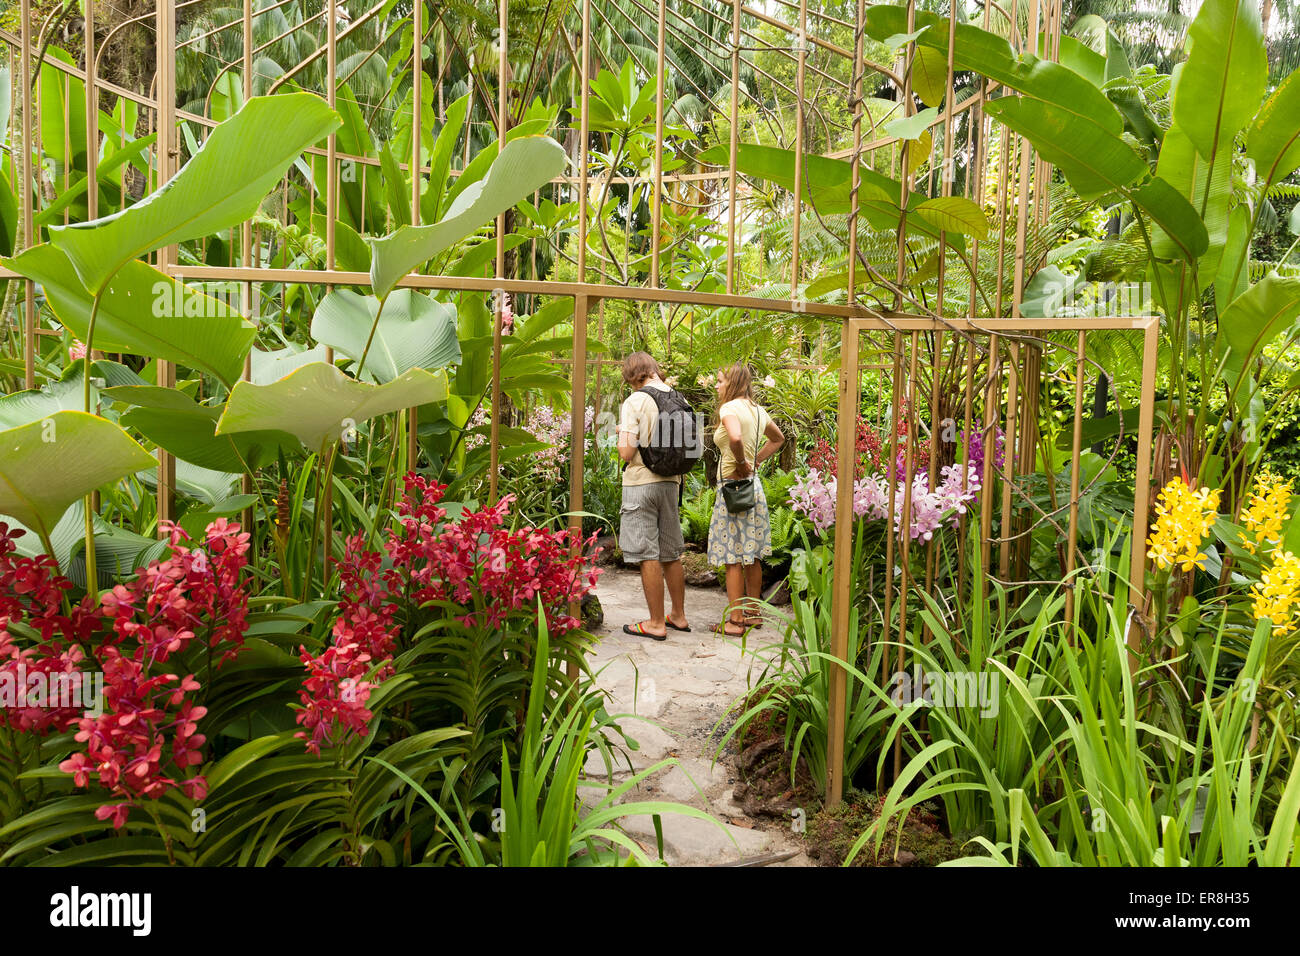 A Tourist Couple Looking At The Orchids, National Orchid Garden, Singapore  Botanic Gardens, Singapore South East Asia